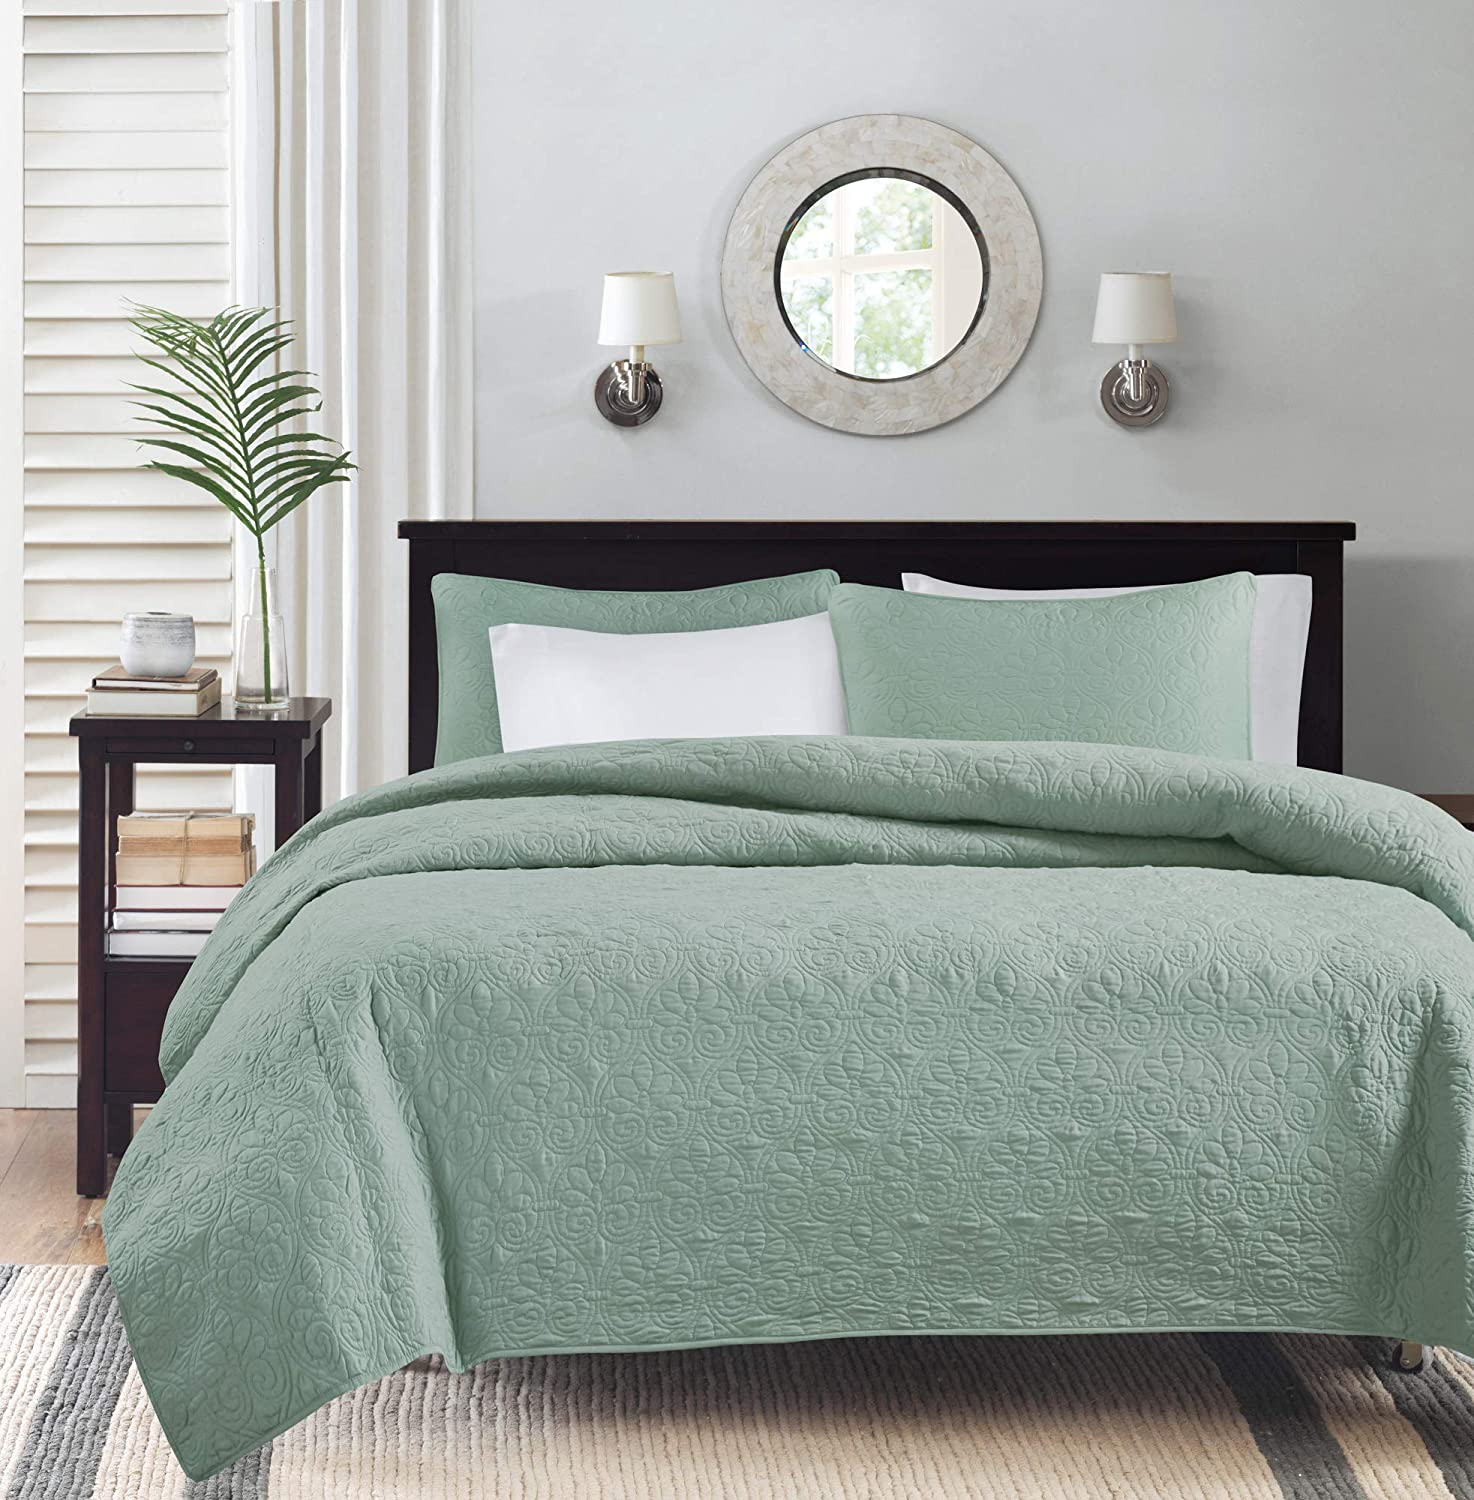 Grey Madison Park Claire King//Cal King Size Quilt Bedding Set Aqua 6 Piece Bedding Quilt Coverlets Ultra Soft Microfiber Bed Quilts Quilted Coverlet Leaf Geometric Renewed